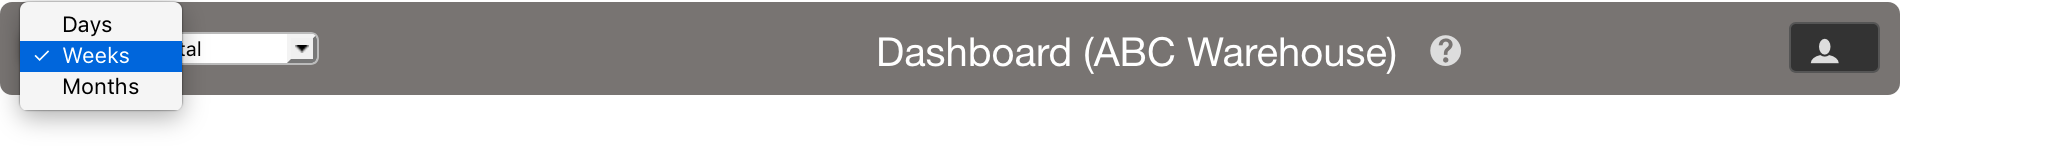 dashboard_selector_period.png